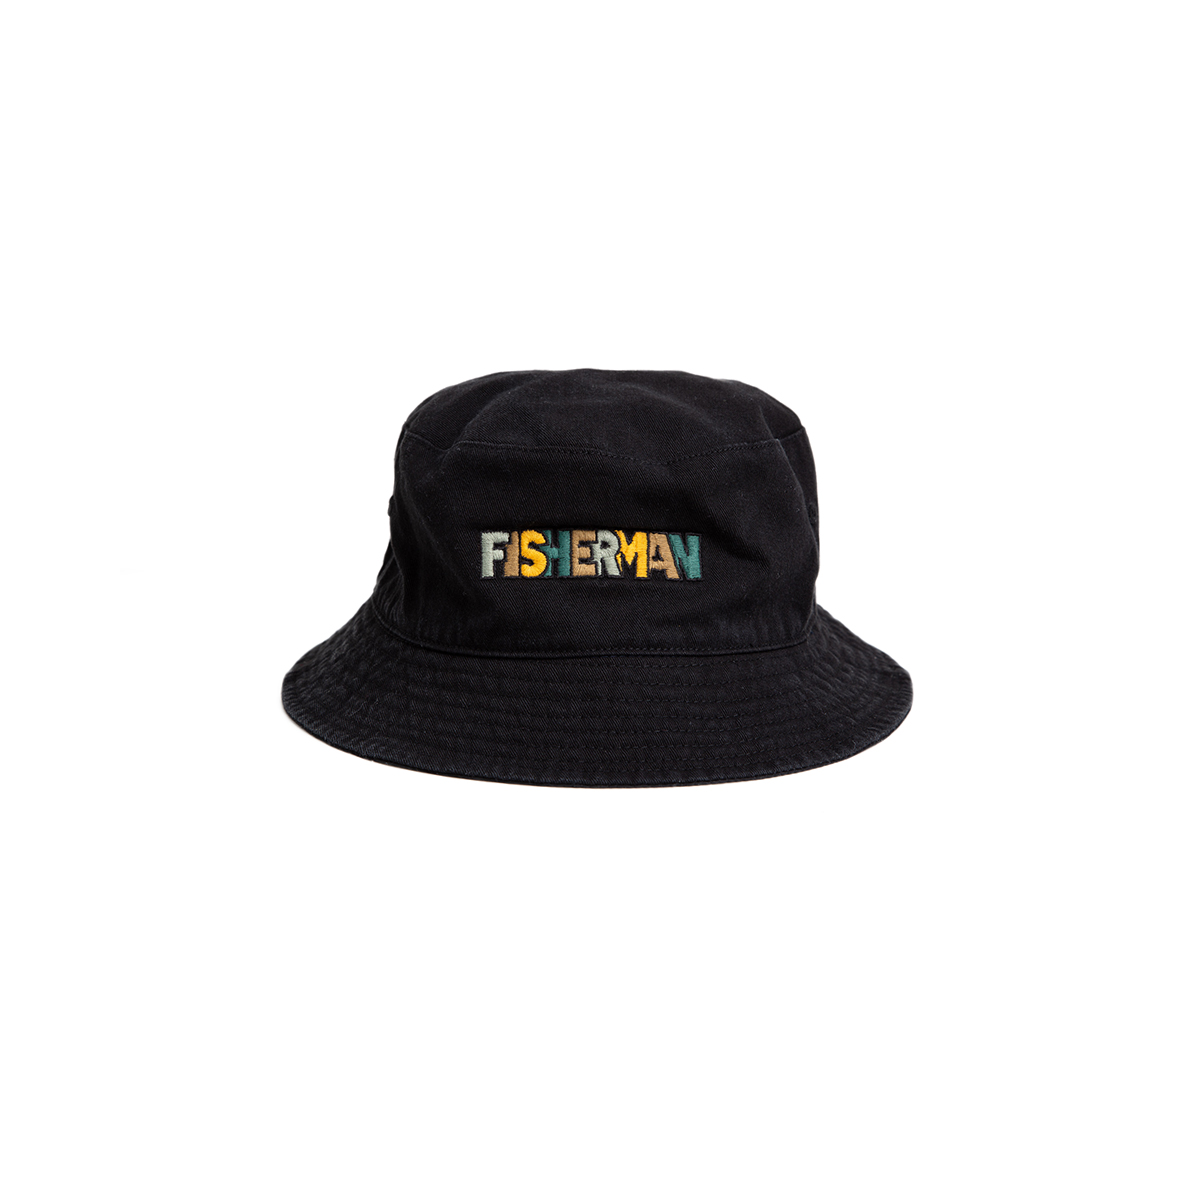 "Reversible Needle Bucket_FISHERMAN ""BLACK""자수가 촘촘히 들어간 버킷[50% off]"